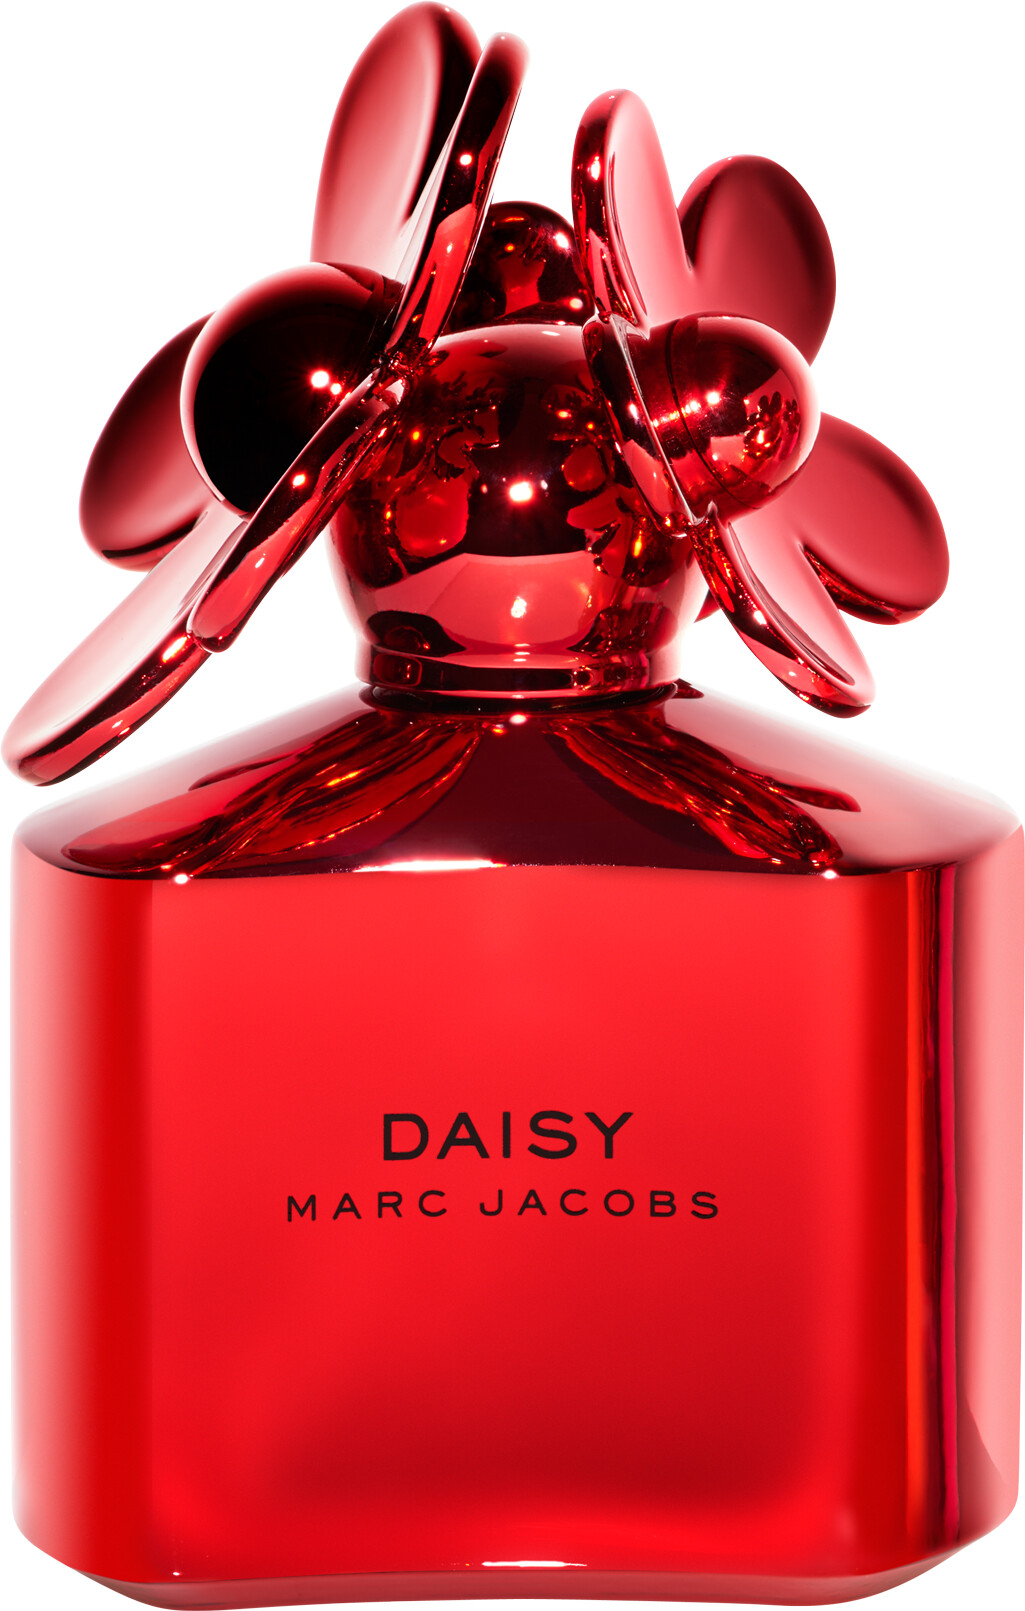 Marc Jacobs Daisy Shine Edition Eau de Toilette Spray 100ml Red